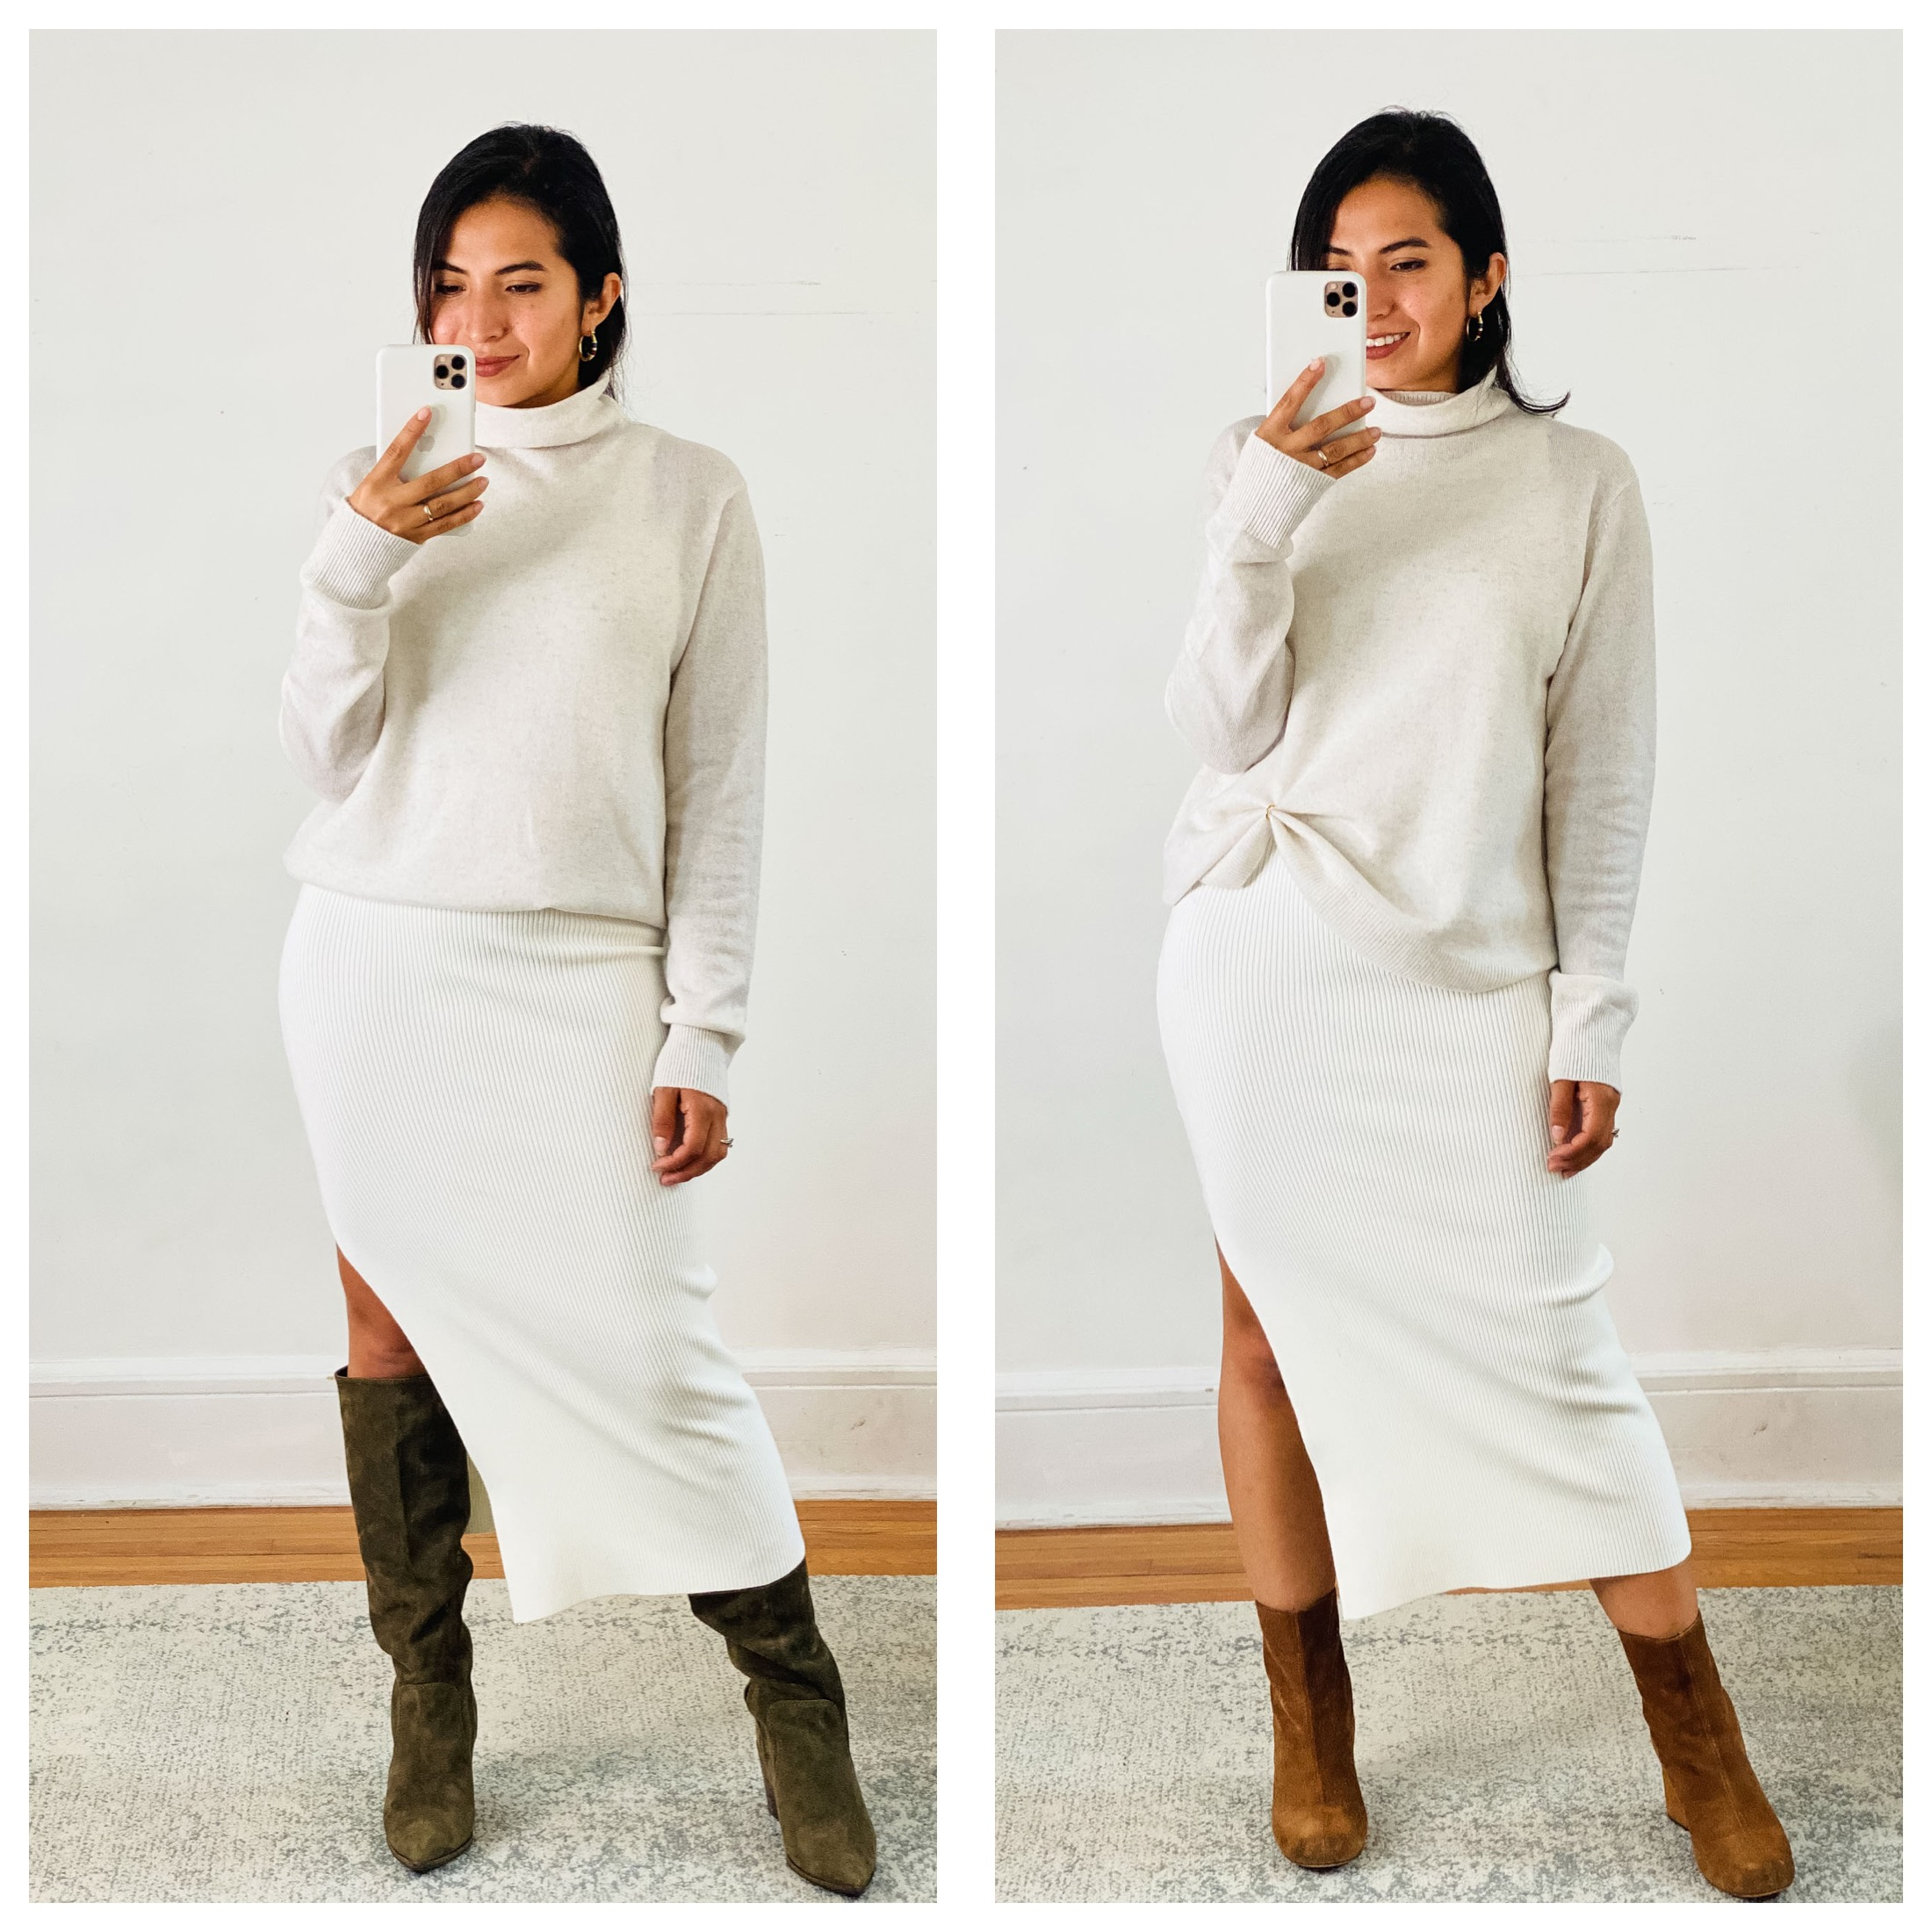 Shop the Nordstrom Anniversary Sale for chic clothes to wear at home. Julieta's formula —from jeans to sweaters & a knit midi dress is perfect.